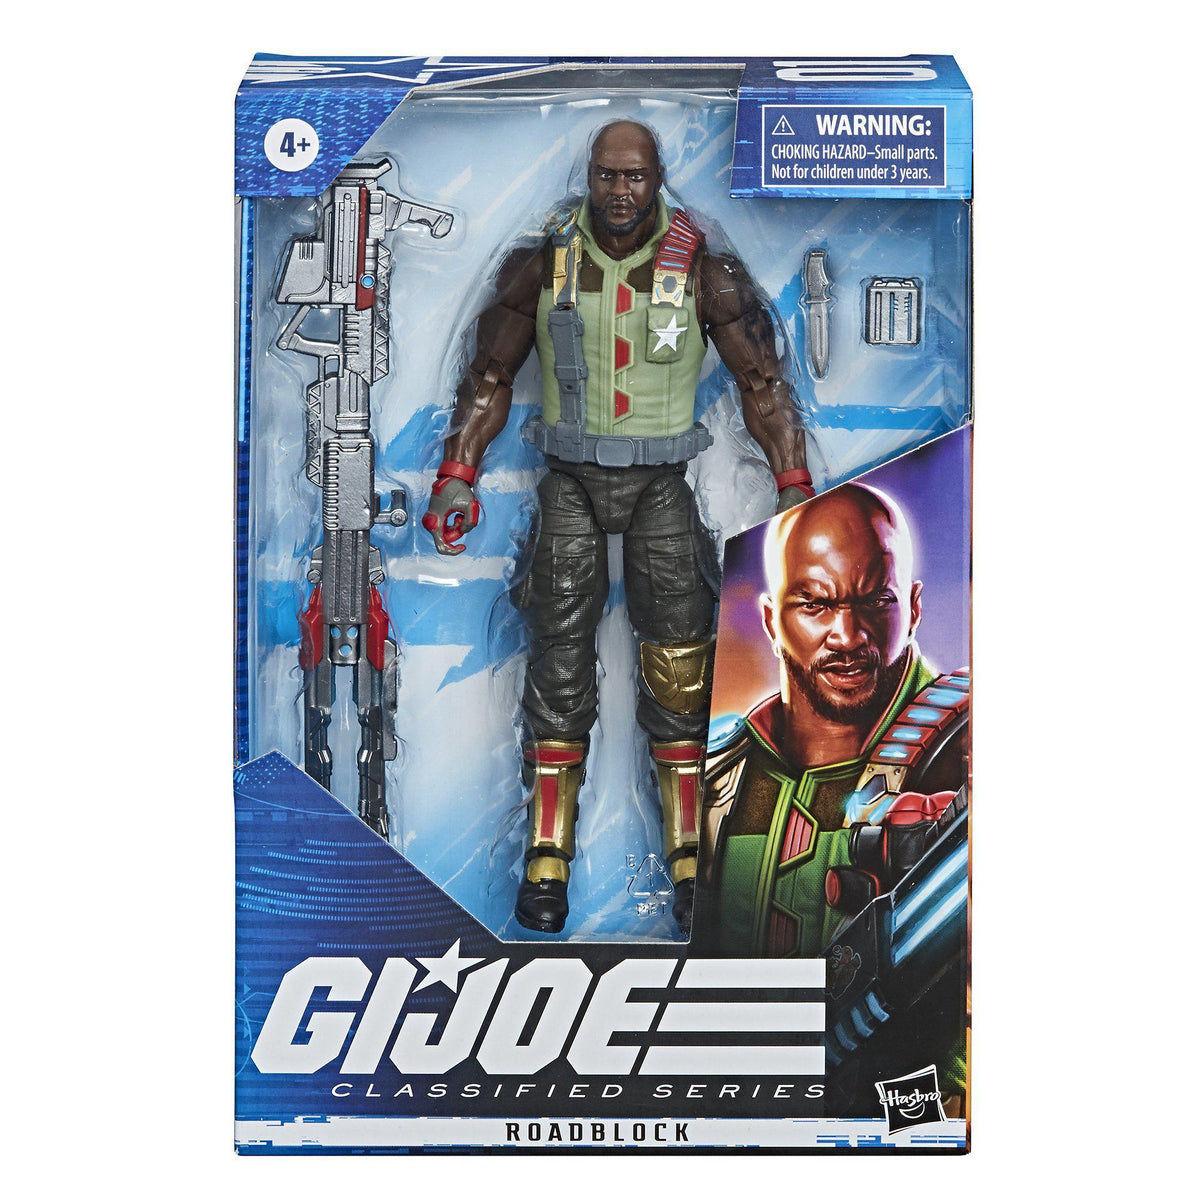 G.I. JOE CLASSIFIED SERIES - ROADBLOCK ACTION FIGURE